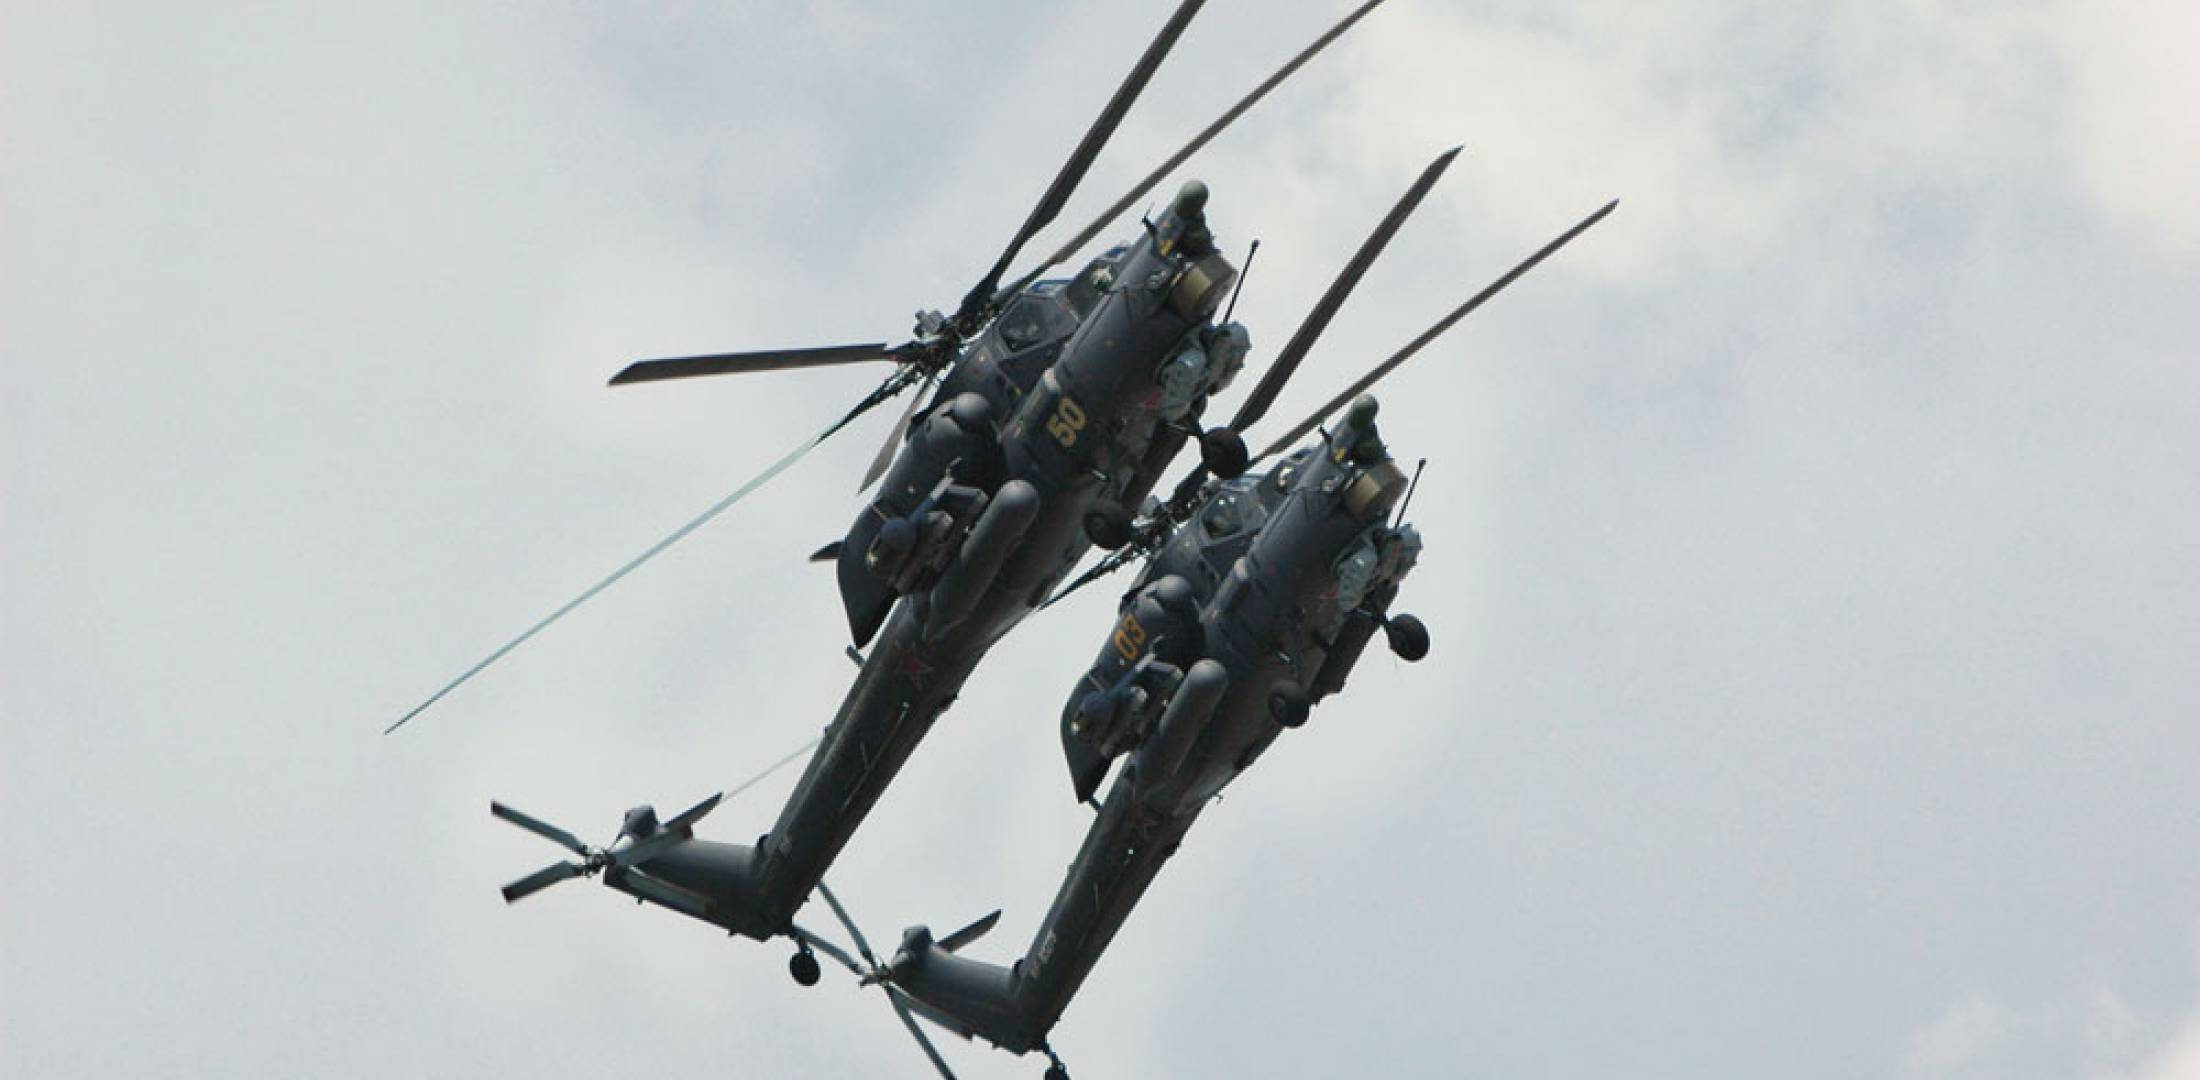 The Mi-28N is primarily intended for fire support of the troops, going into the heat of the battle if required.